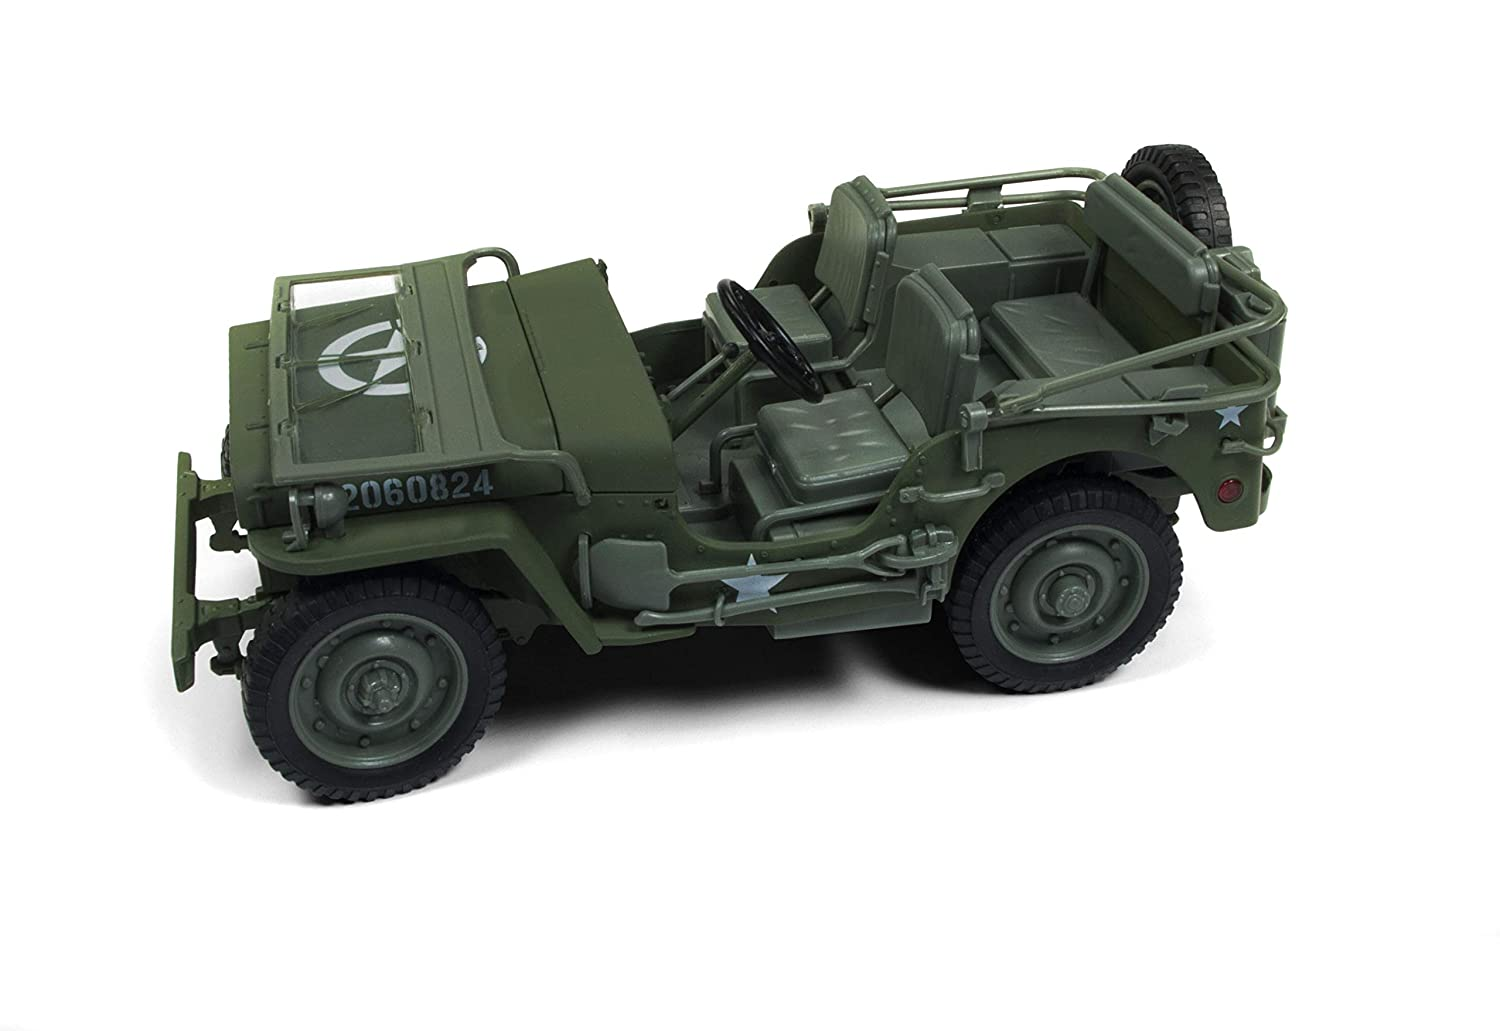 1941 Willys MB Jeep WWII Army Olive Green Drab 1/18 Diecast Model Car by Autoworld AWML001 A B07JHTSQKW